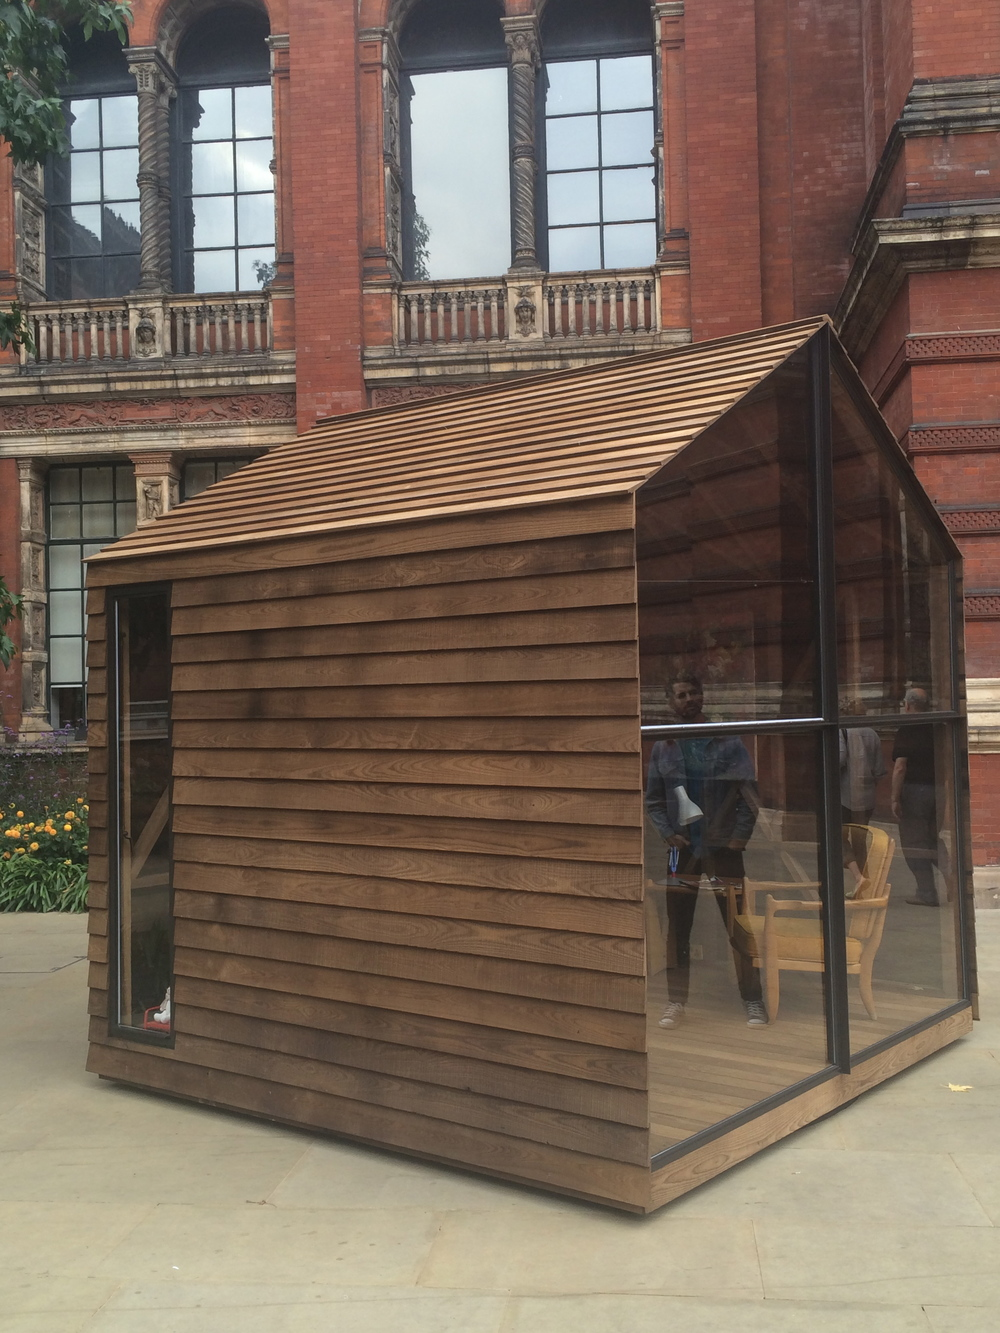 Paul Smith shed / V&A